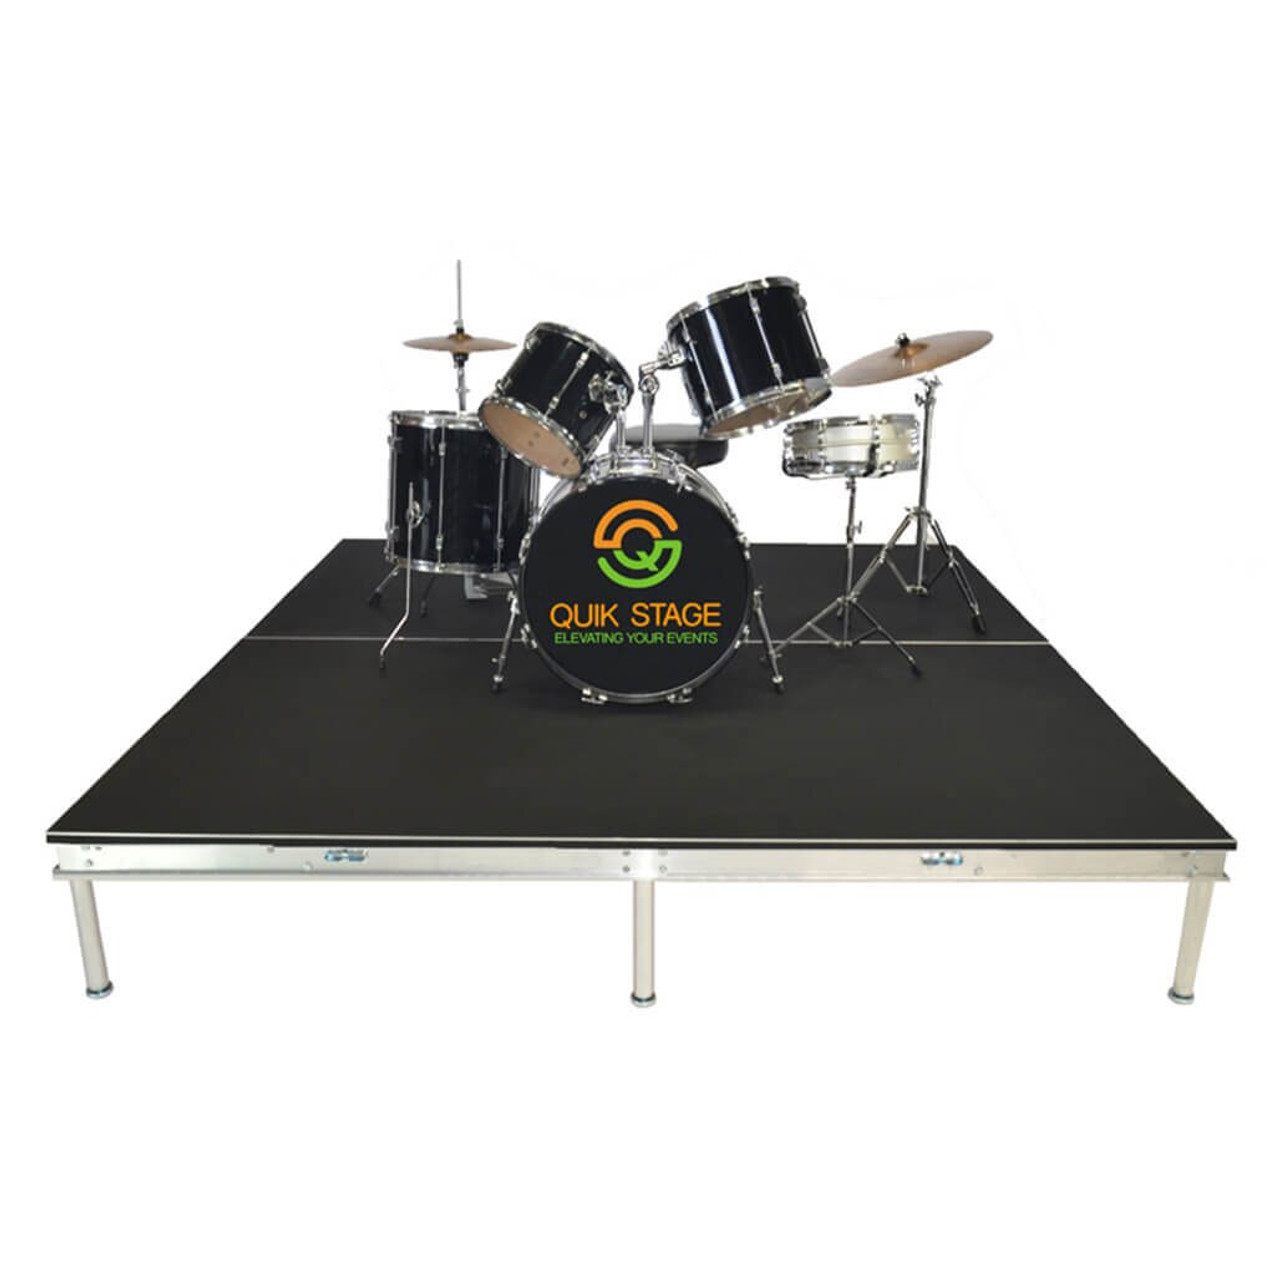 Quik Stage 4' x 16' High Portable Stage Package with Black Polyvinyl Non-Skid Surface. Additional Heights and Surfaces Available. - Drum Riser without skirting.